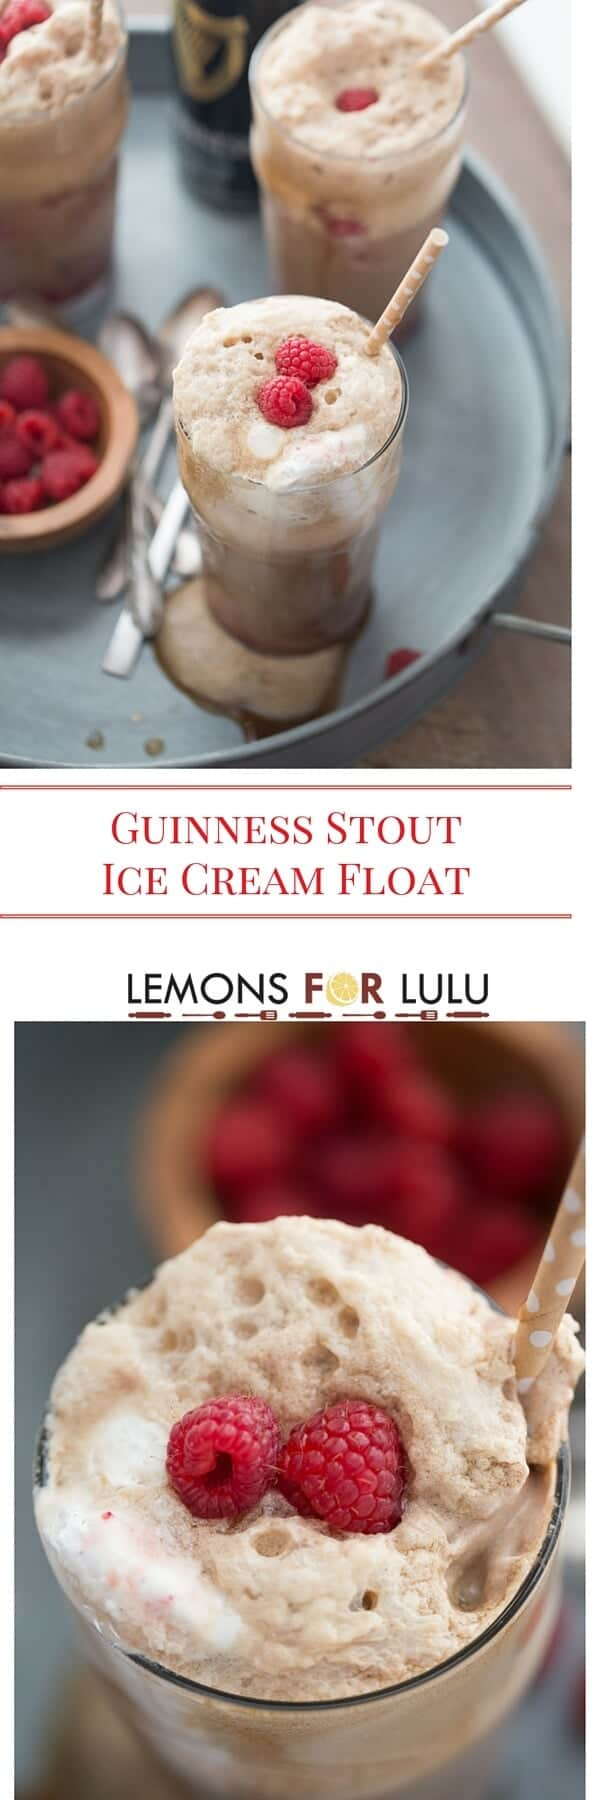 Creamy Guinness Stout Beer is the perfect partner to sweet ice cream and fresh berries in this easy ice cream float recipe!